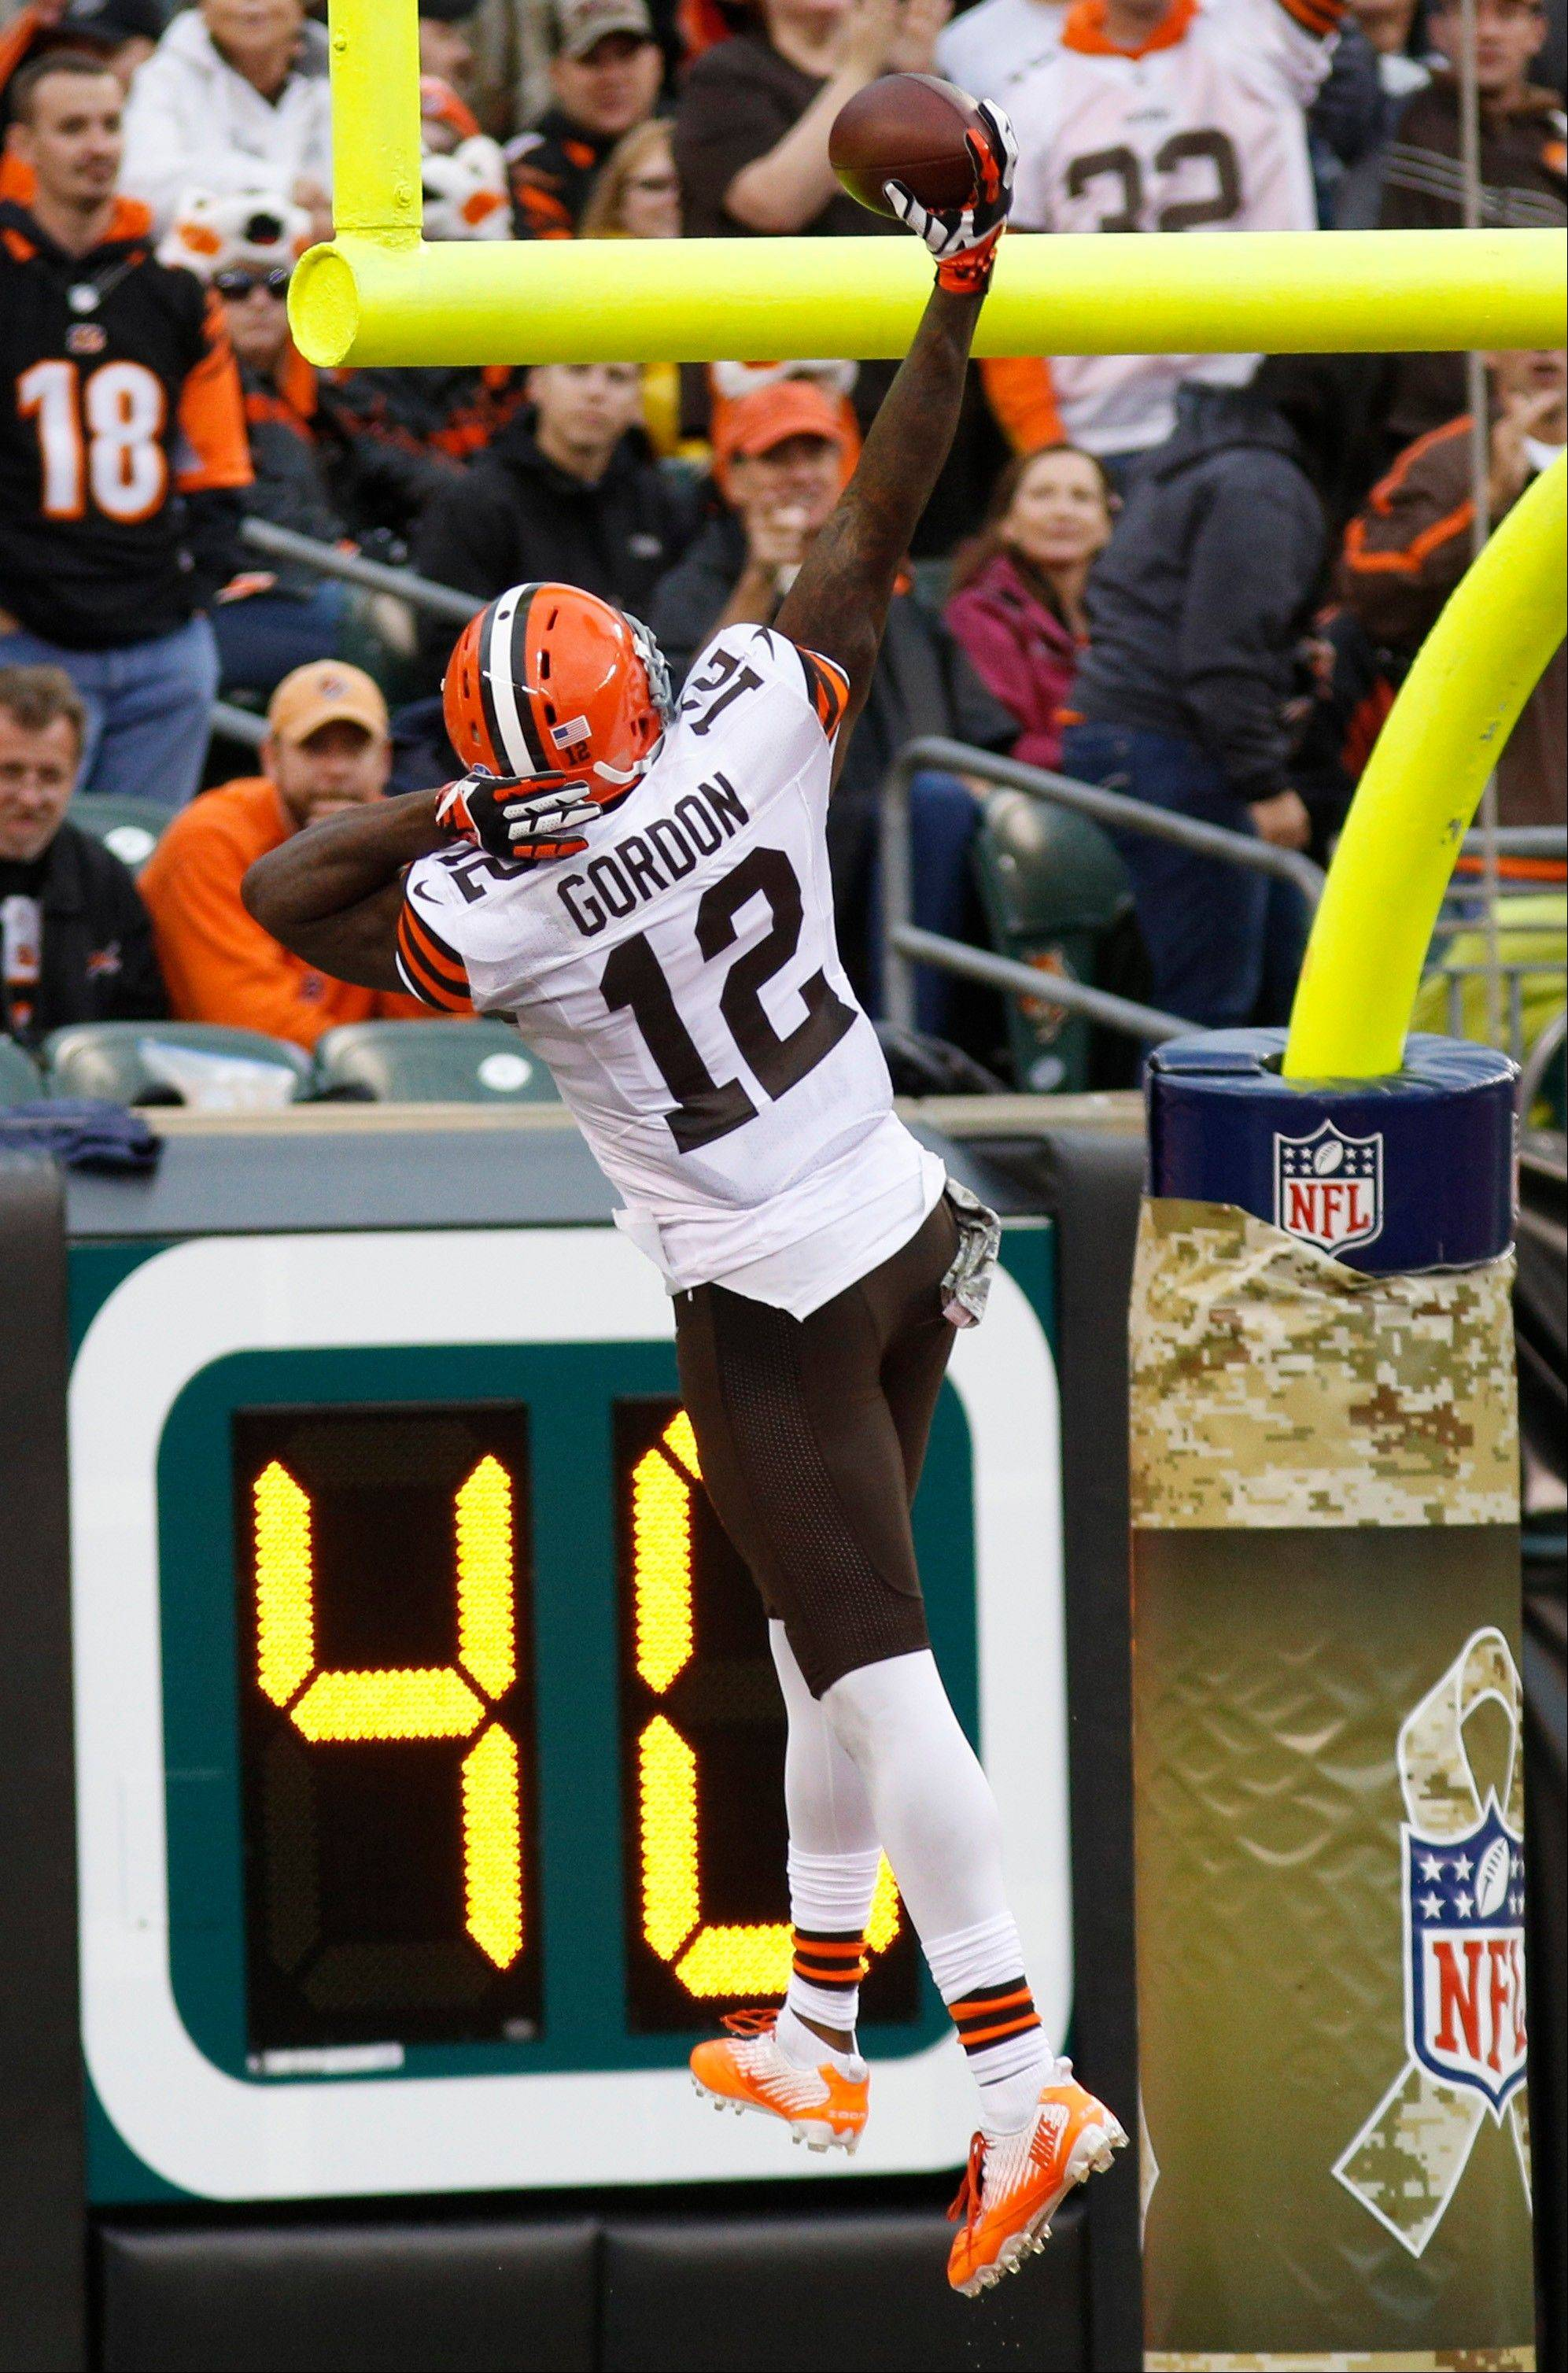 Cleveland Browns wide receiver Josh Gordon (12) spikes the ball over the goalpost after scoring on a 74-yard pass reception against the Cincinnati Bengals in the second half of an NFL football game on Sunday, Nov. 17, 2013, in Cincinnati.